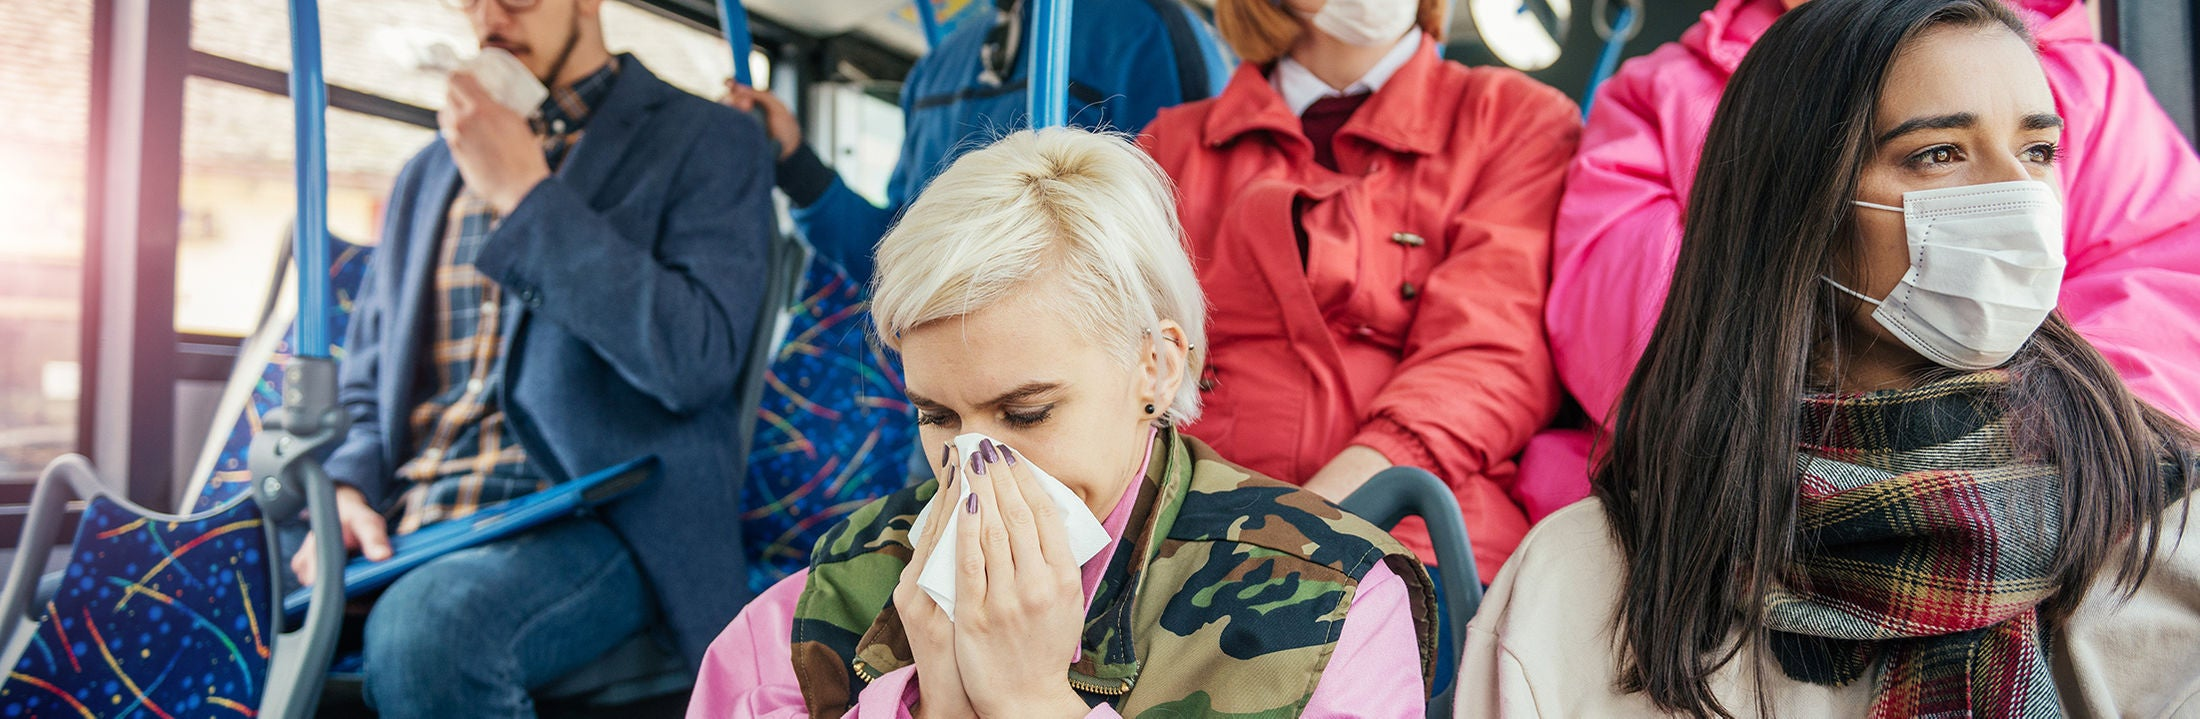 People wearing masks in public transport, one of them is blowing her nose